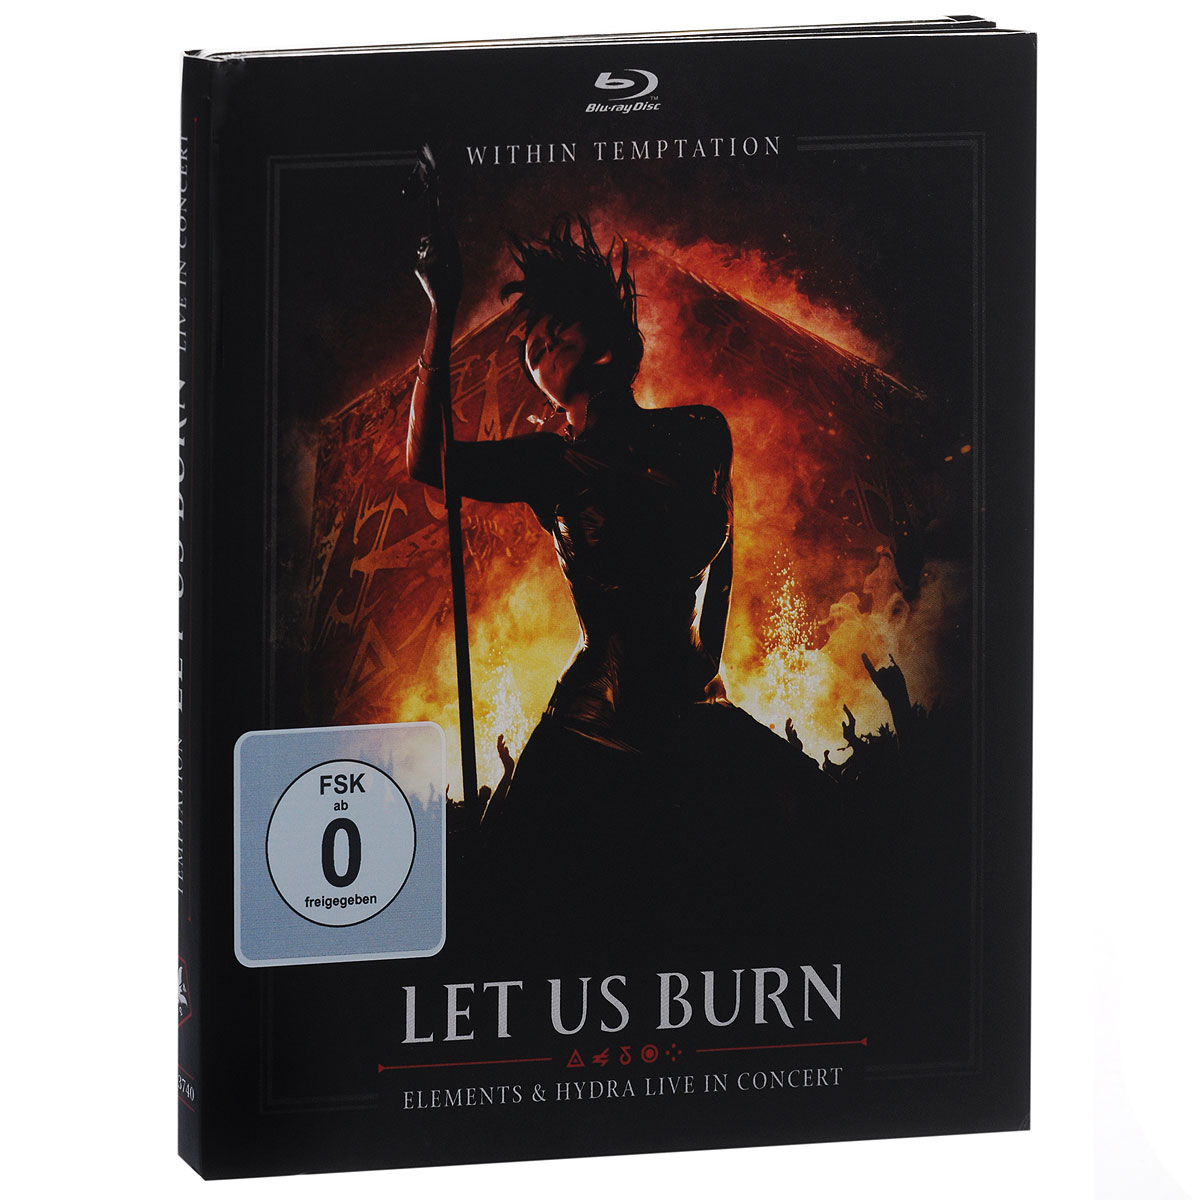 """""""Within Temptation"""" Within Temptation. Let Us Burn. Elements & Hydra Live In Concert (2 CD + Blu-ray)"""